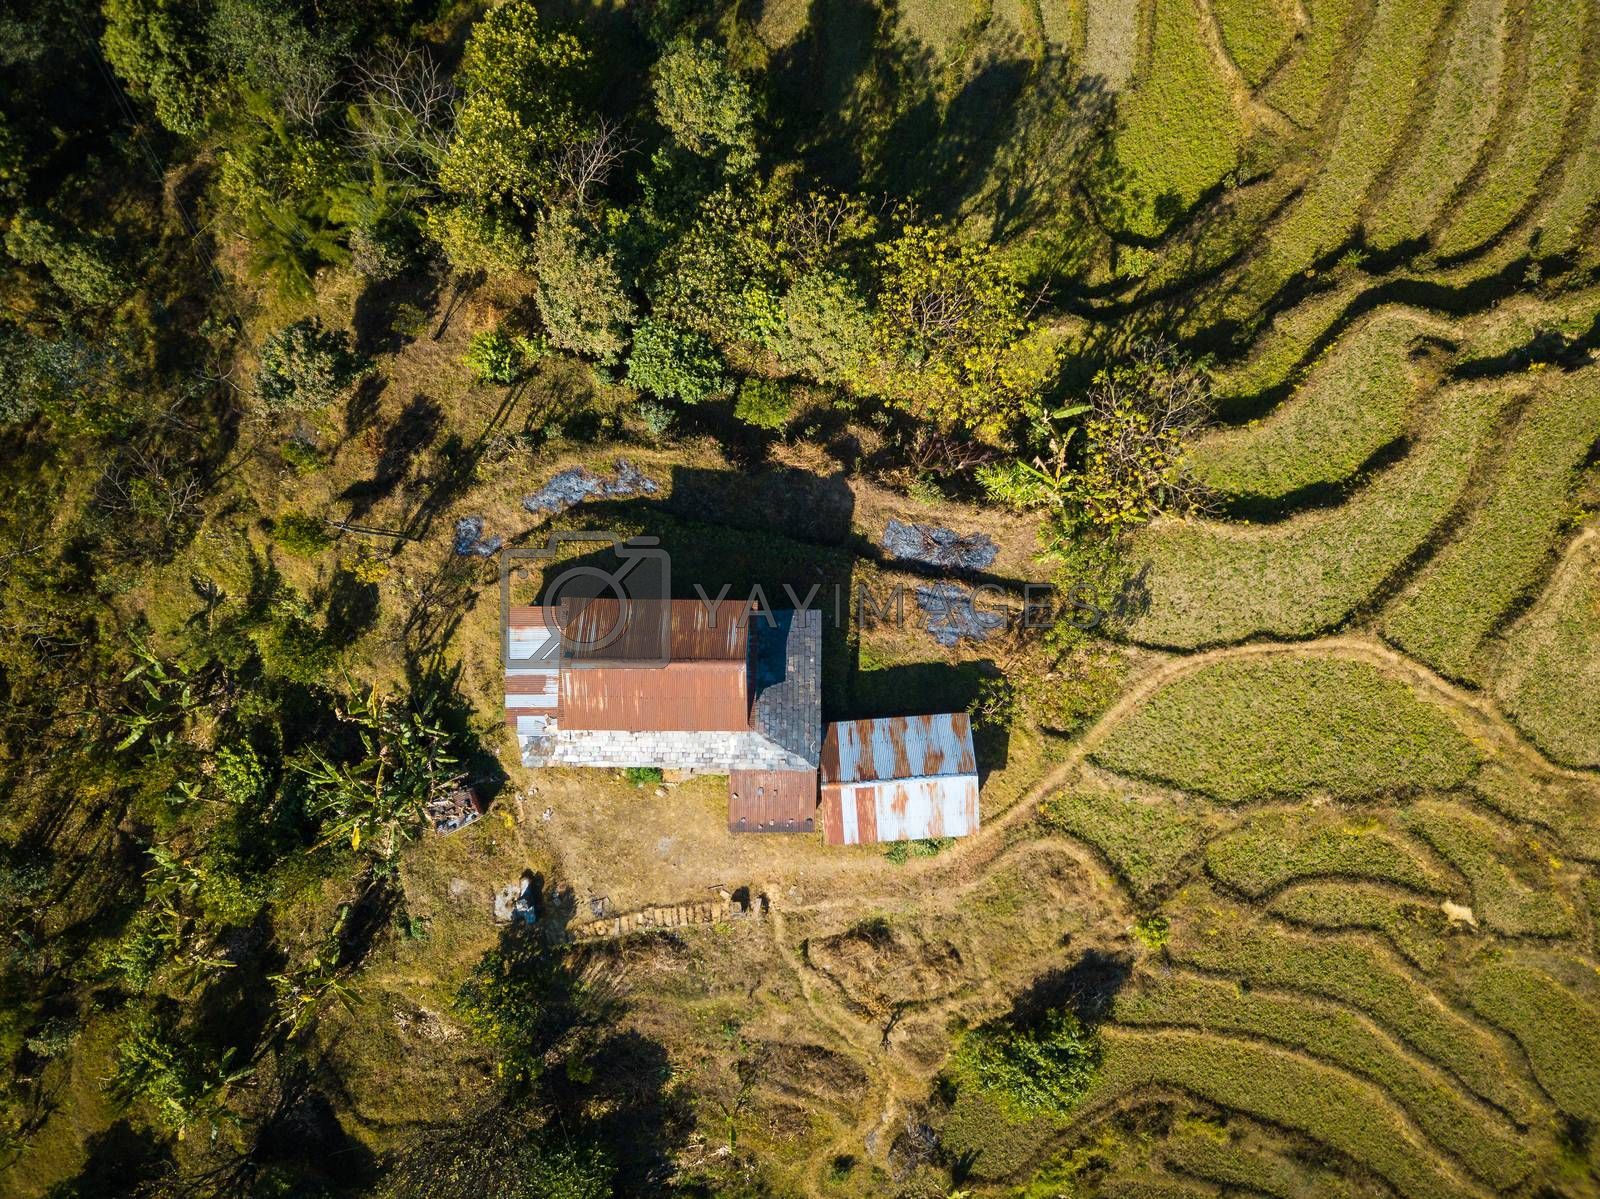 Aerial view of a house among paddy fields and trees in Nepal